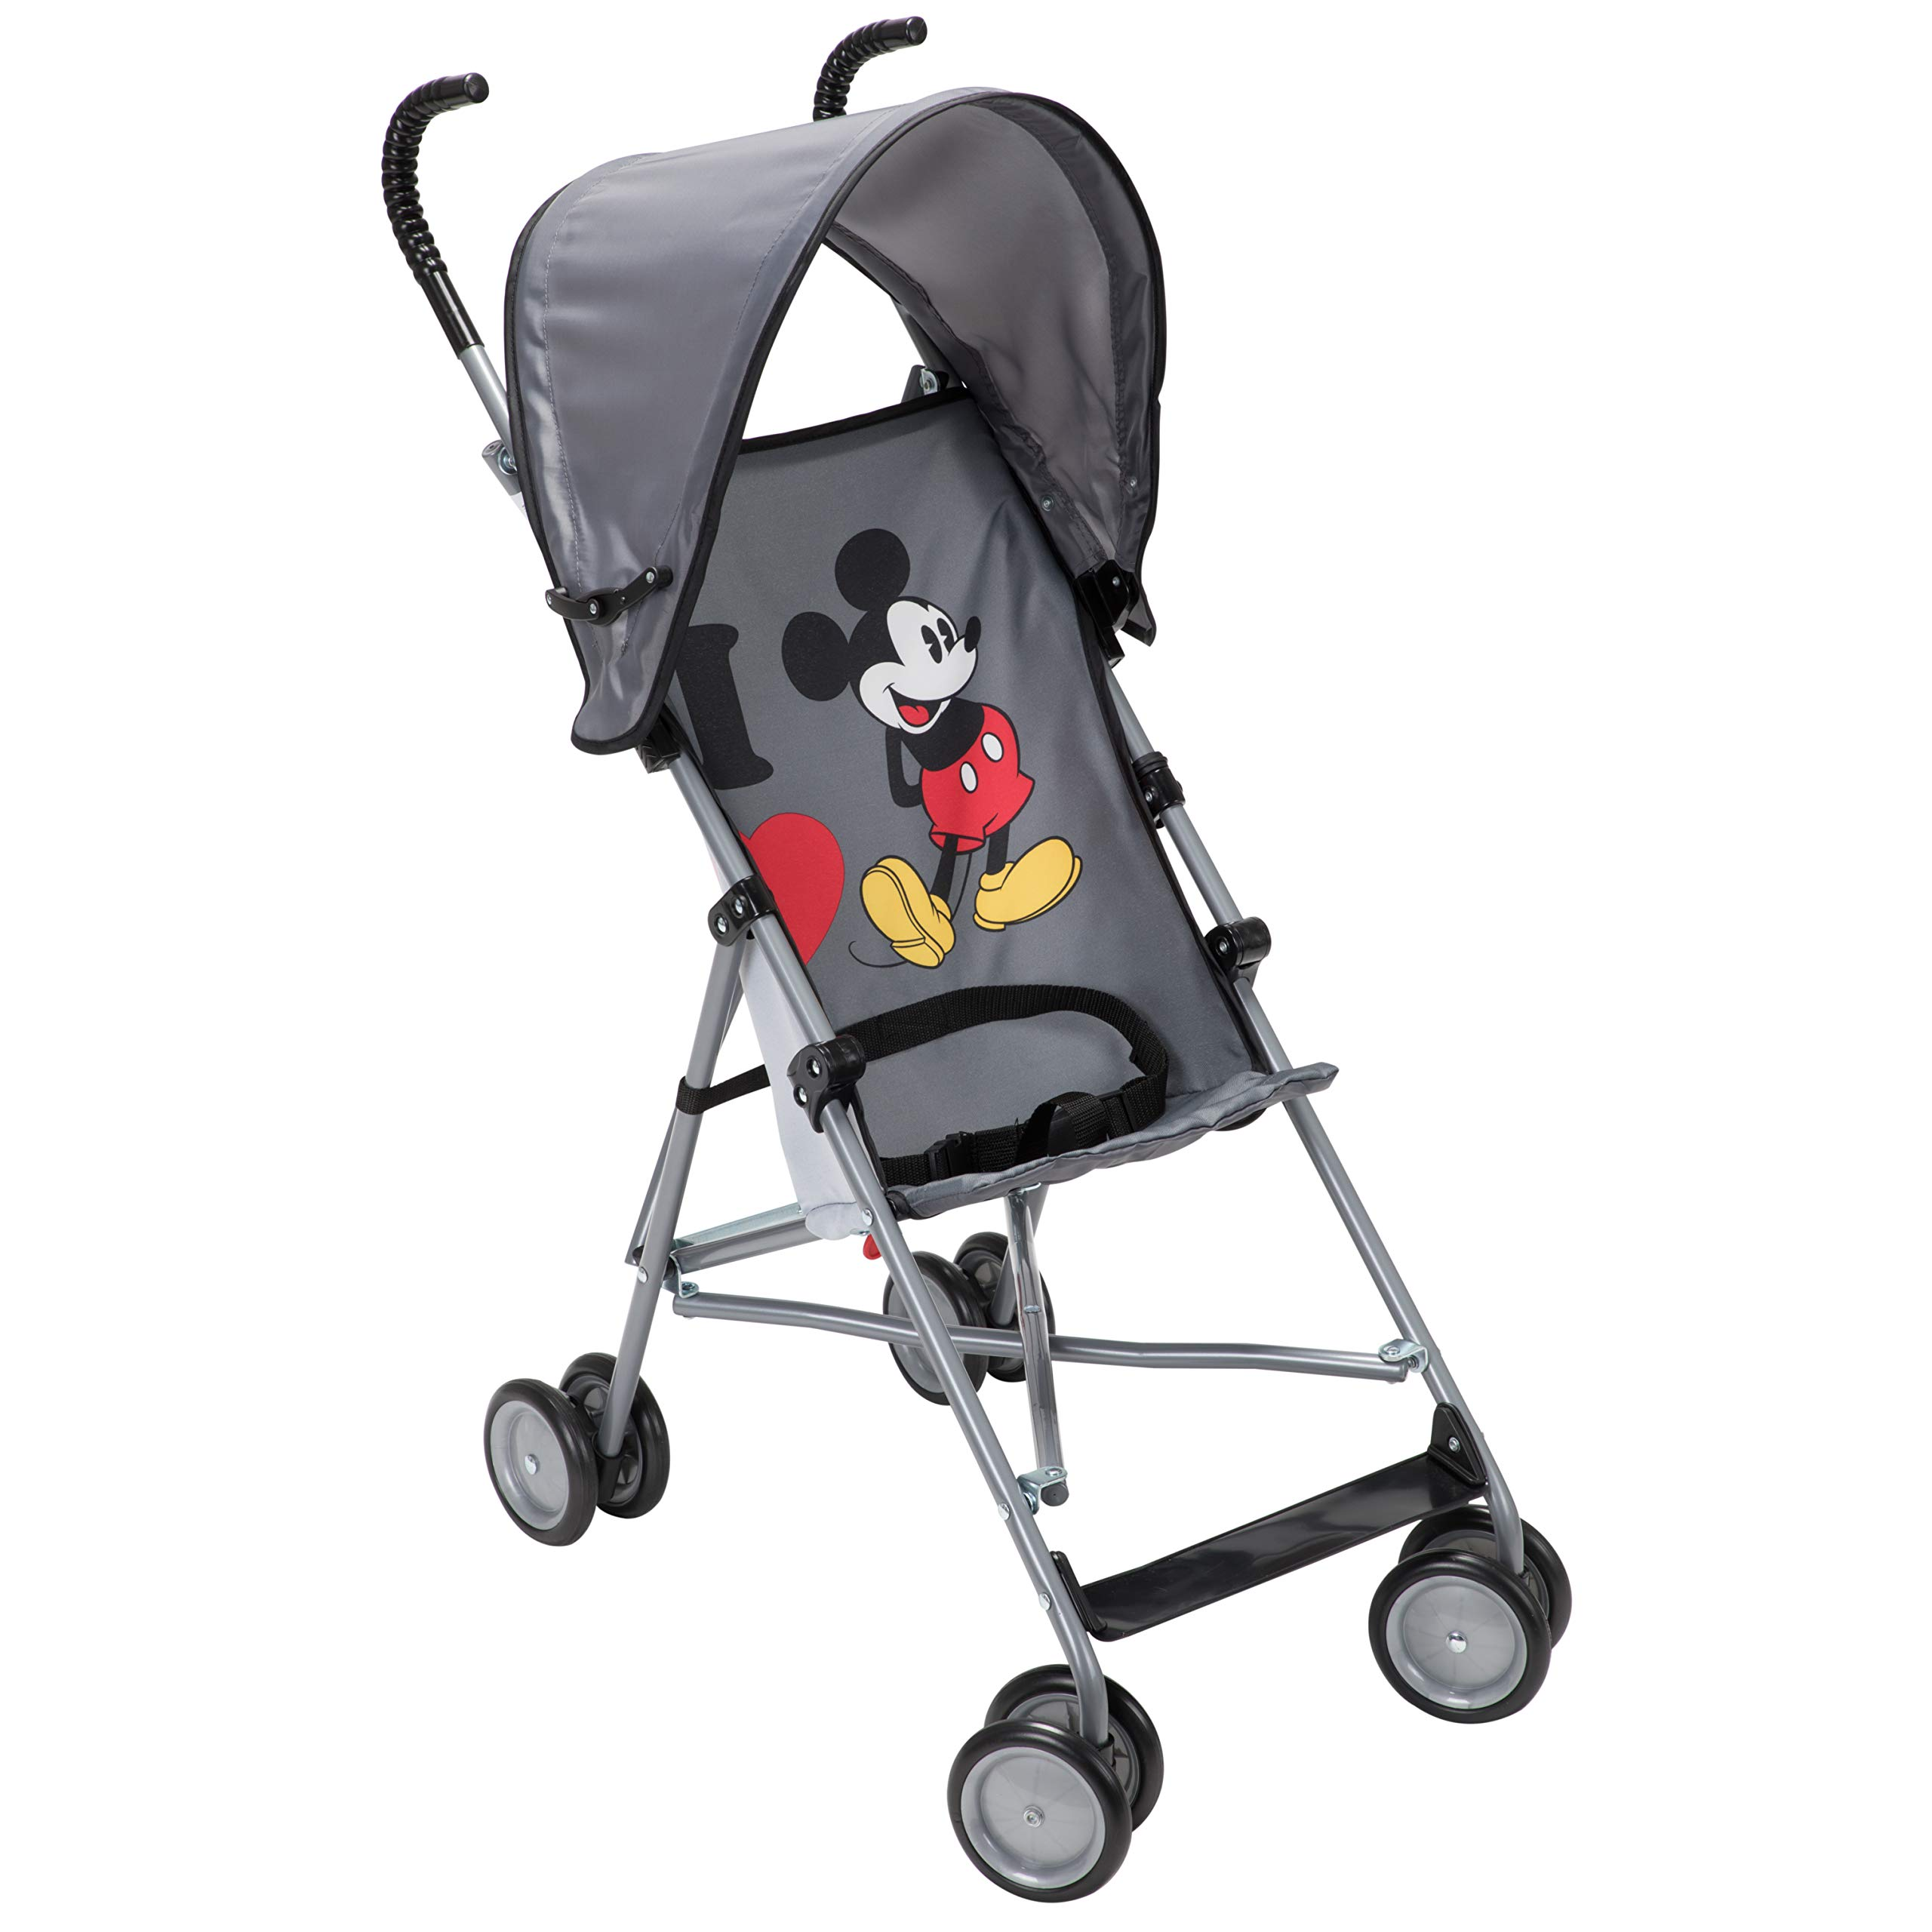 Disney Umbrella Stroller with Canopy, I Heart Mickey